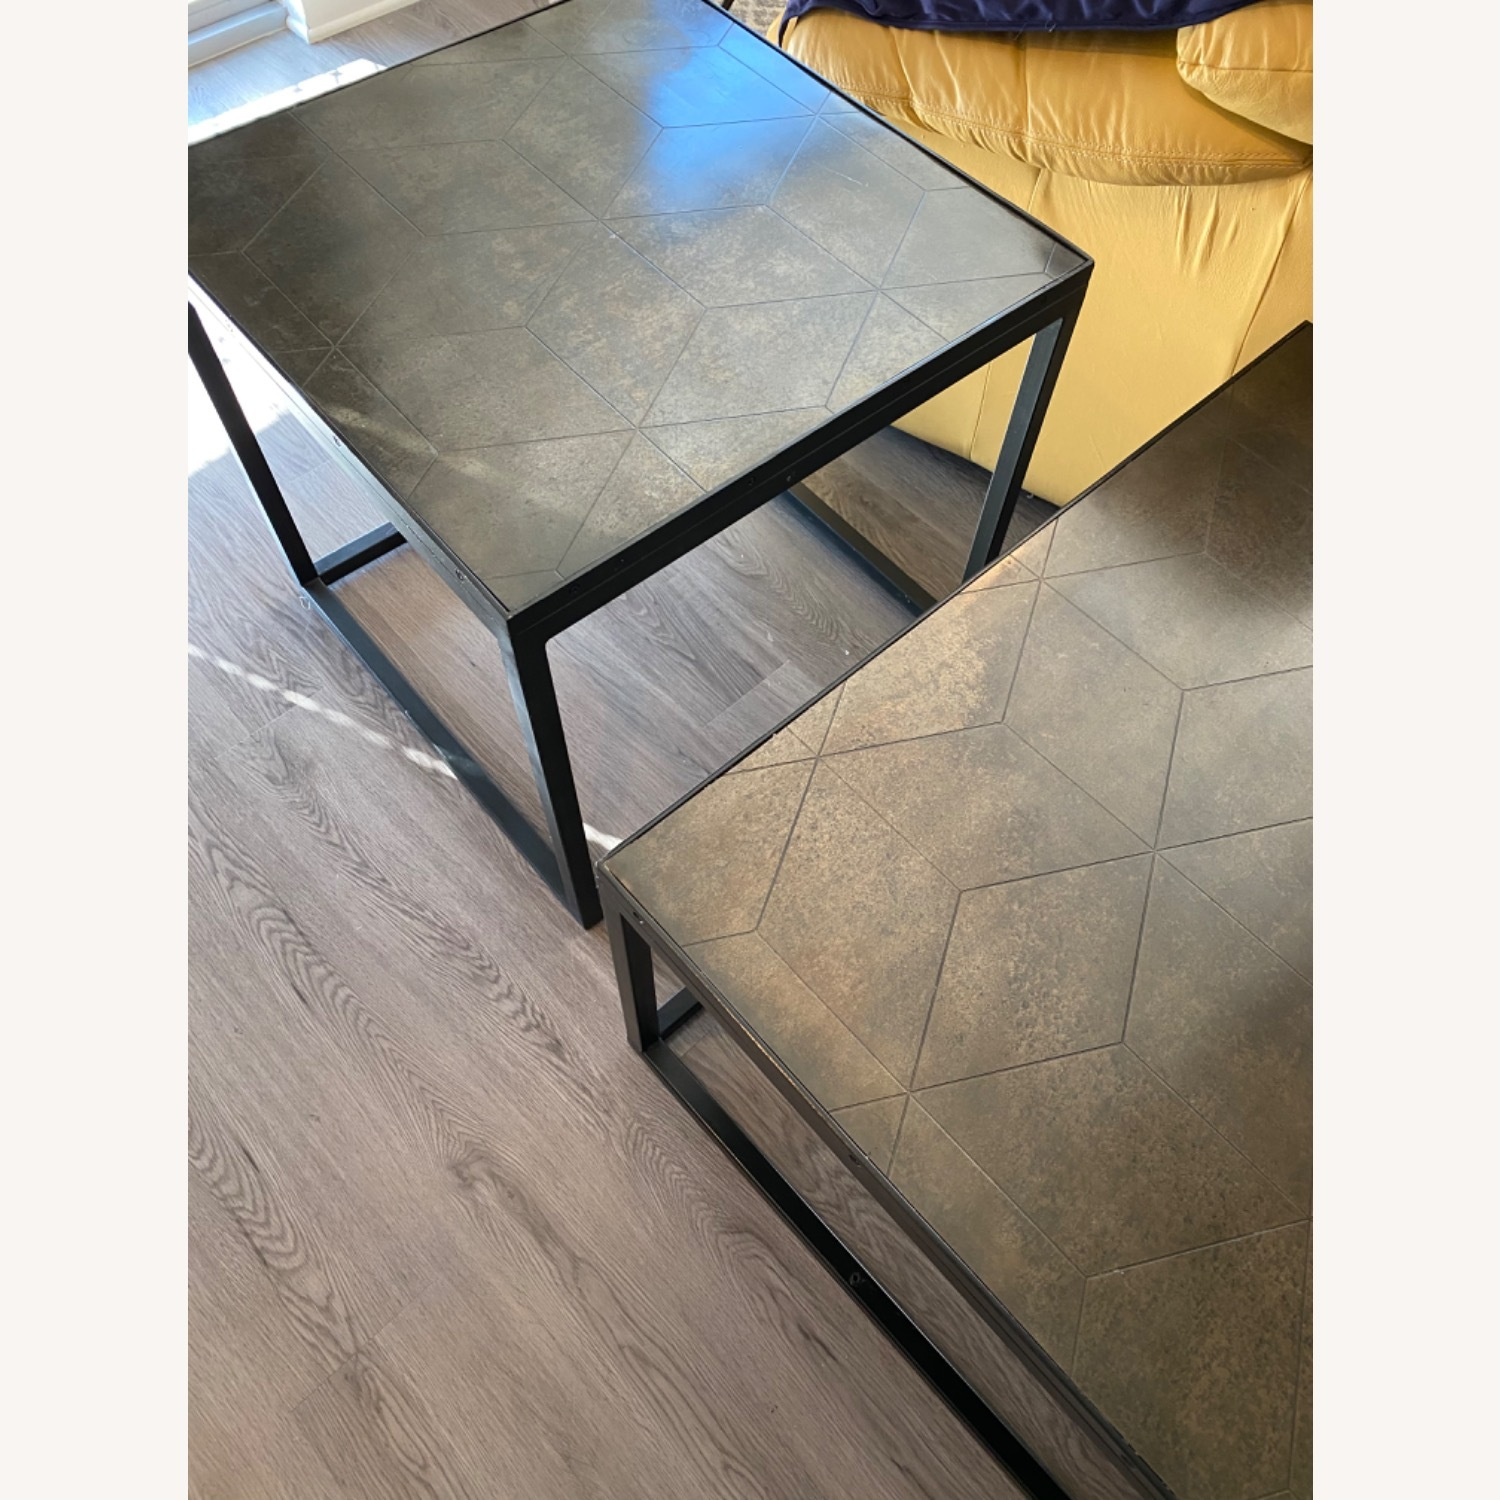 Restoration Hardware Metal Parquet Side Table - image-7